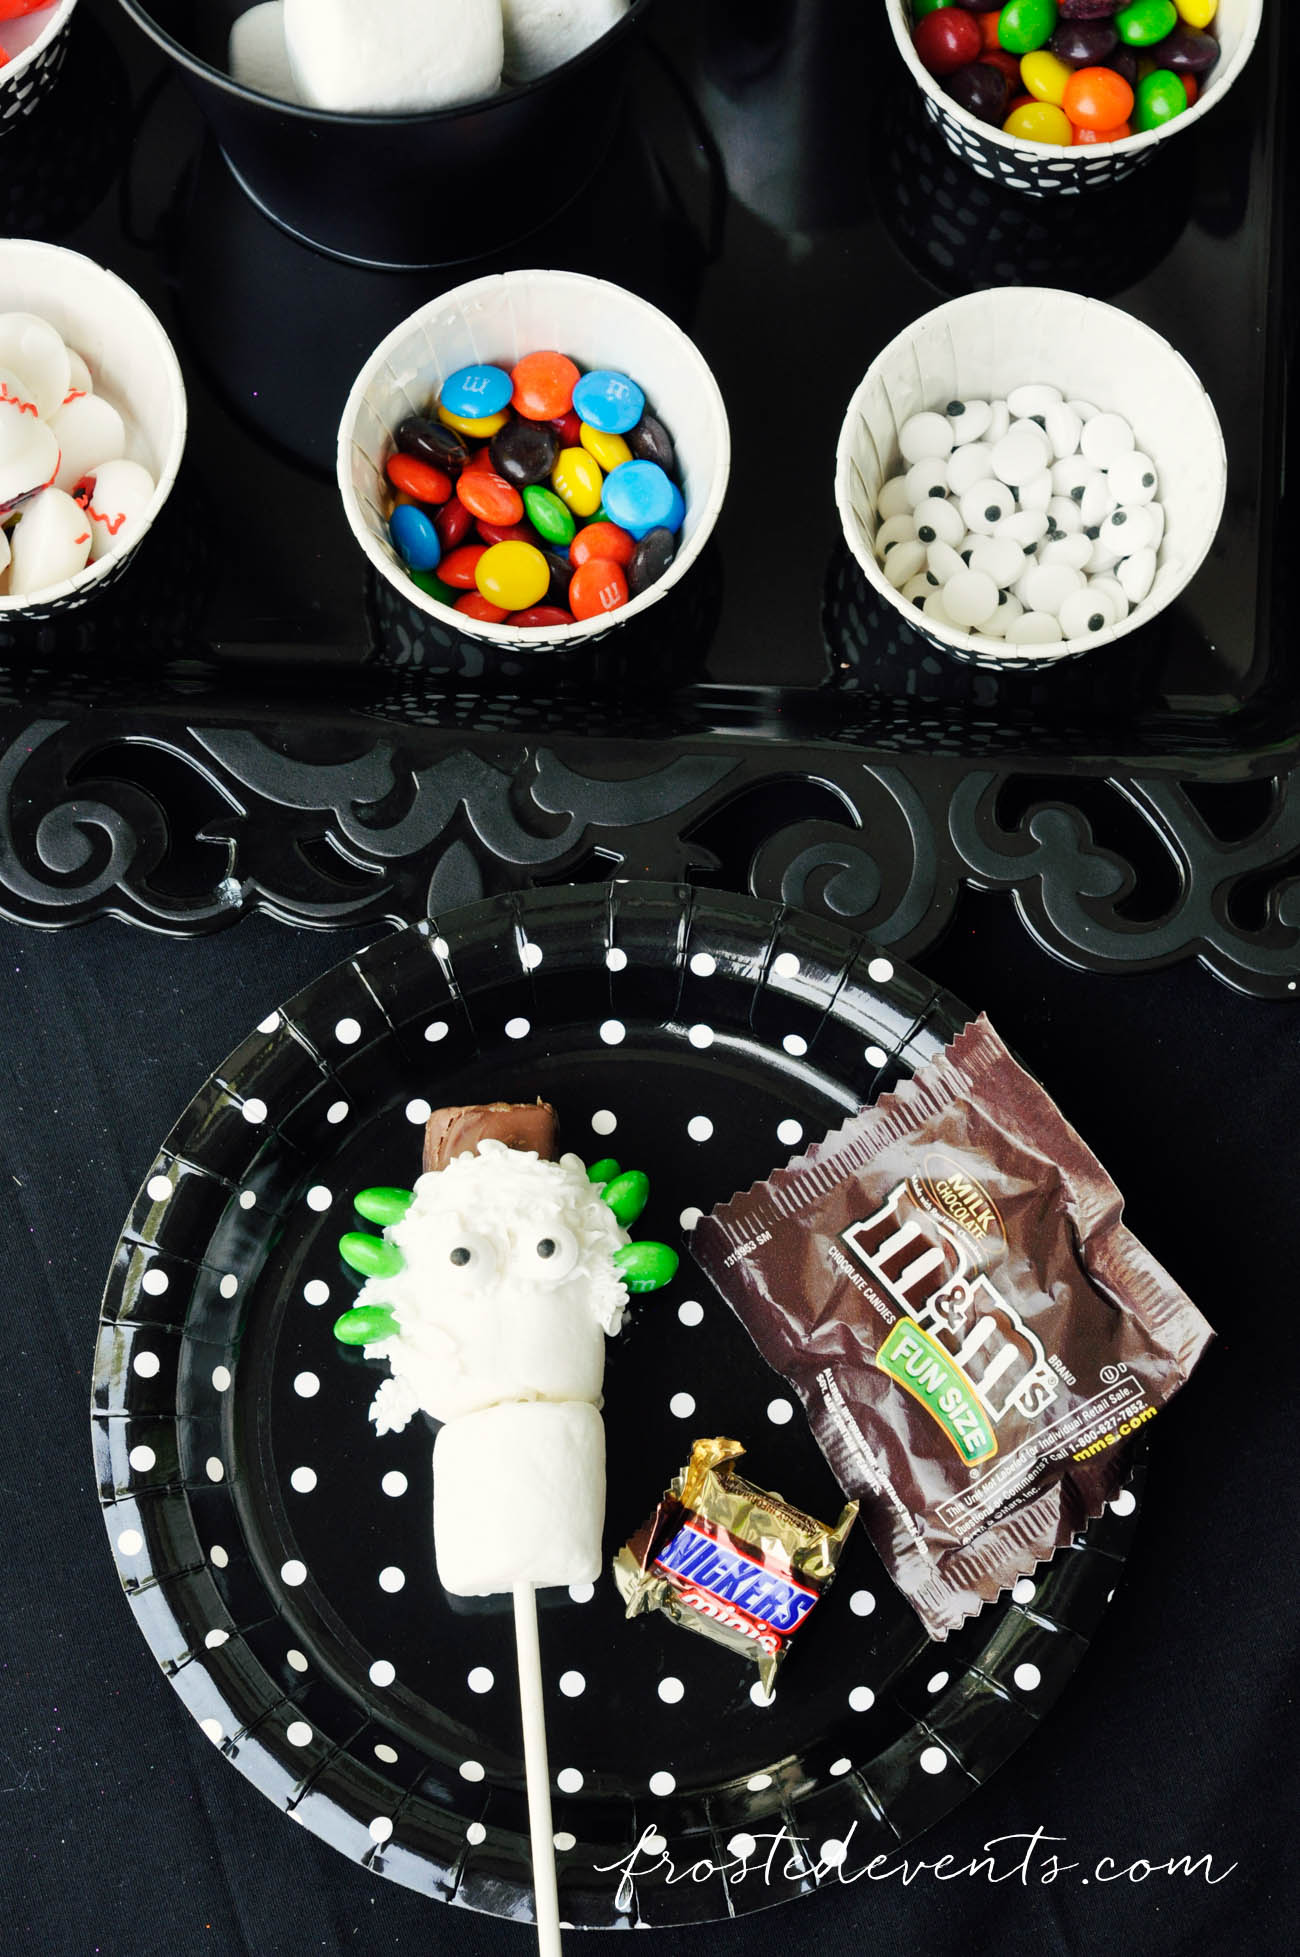 halloween boo kit halloween party ideas frostedevents mars 08Quick and Easy Snacks and Lunch Ideas Arla Cheese Recipes Snack to School